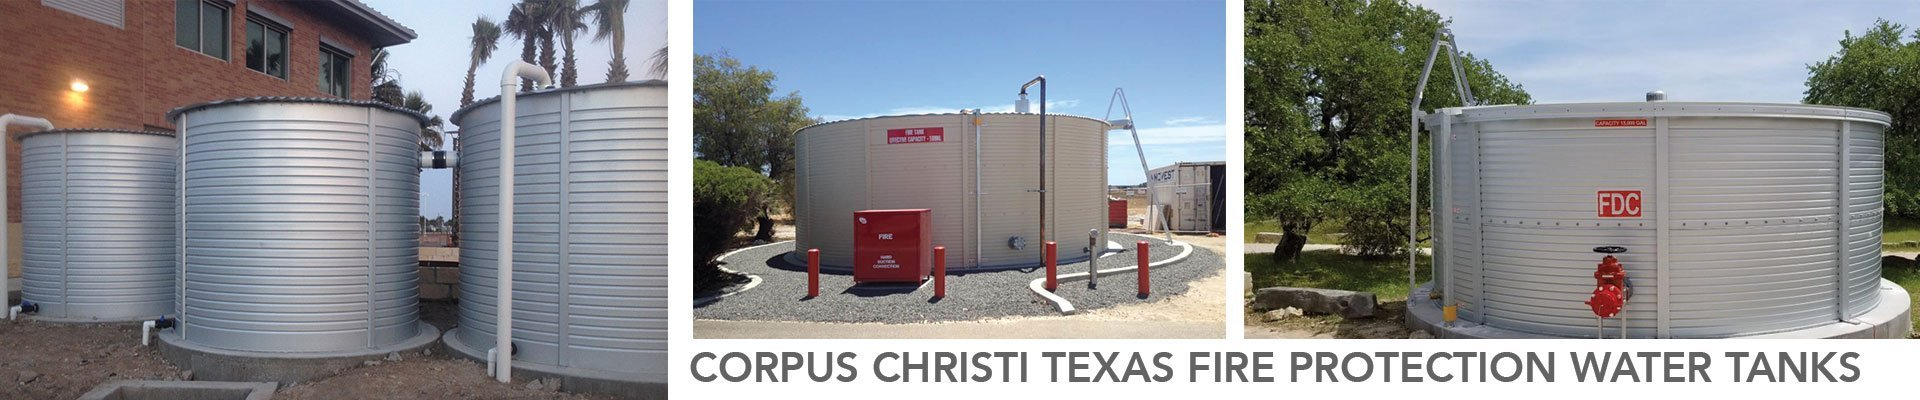 Corpus Christi Texas Fire Protection Water Tanks